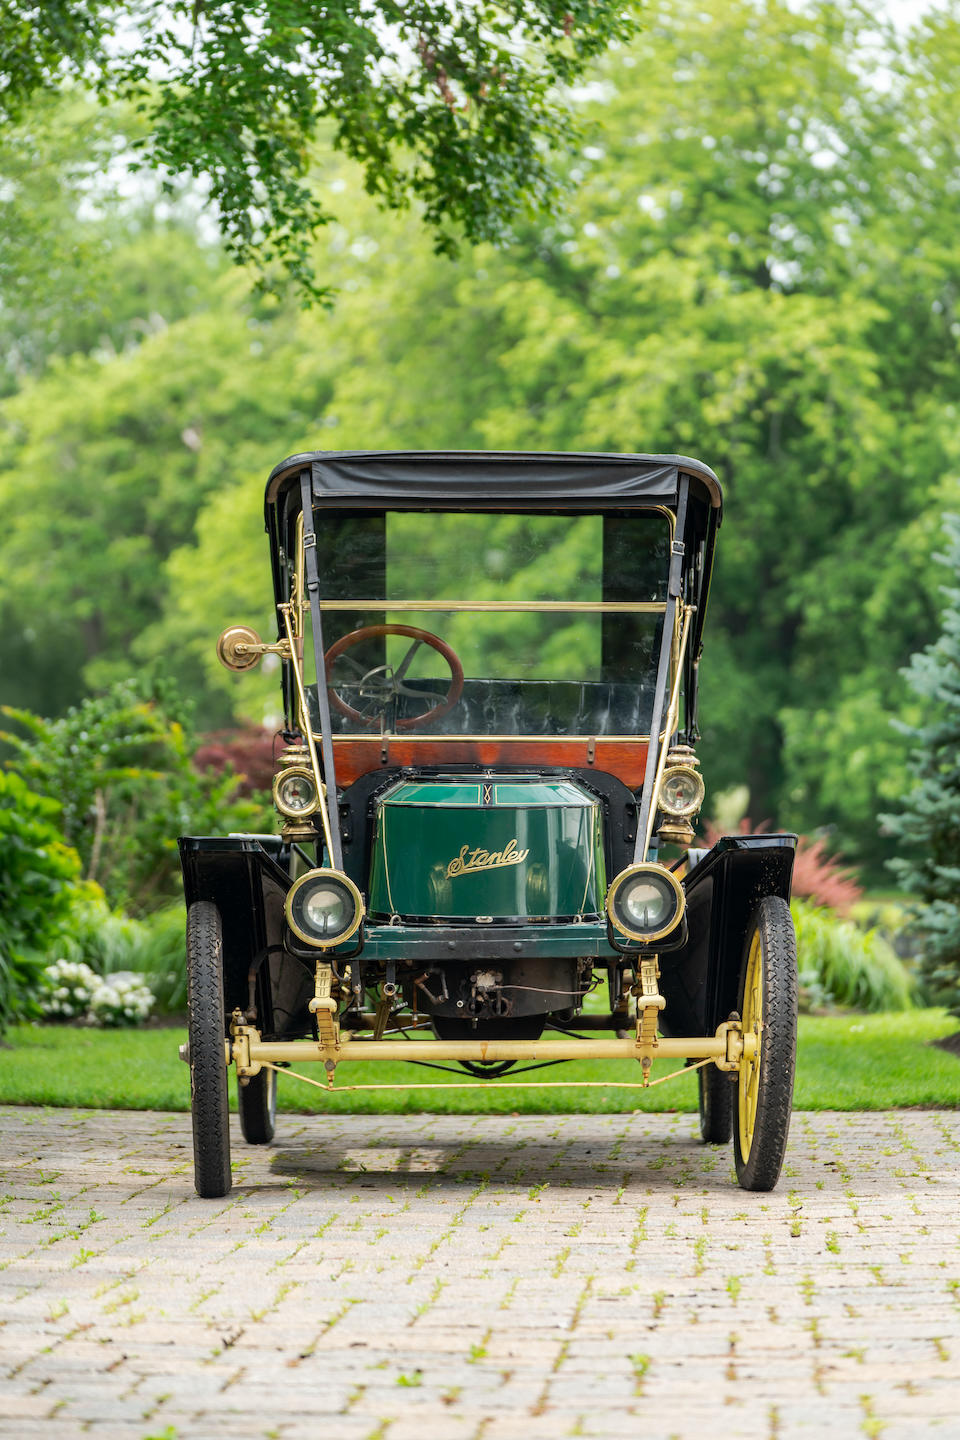 <b>1910 Stanley Steamer 10hp Tourer</b><br />Chassis no. 5494